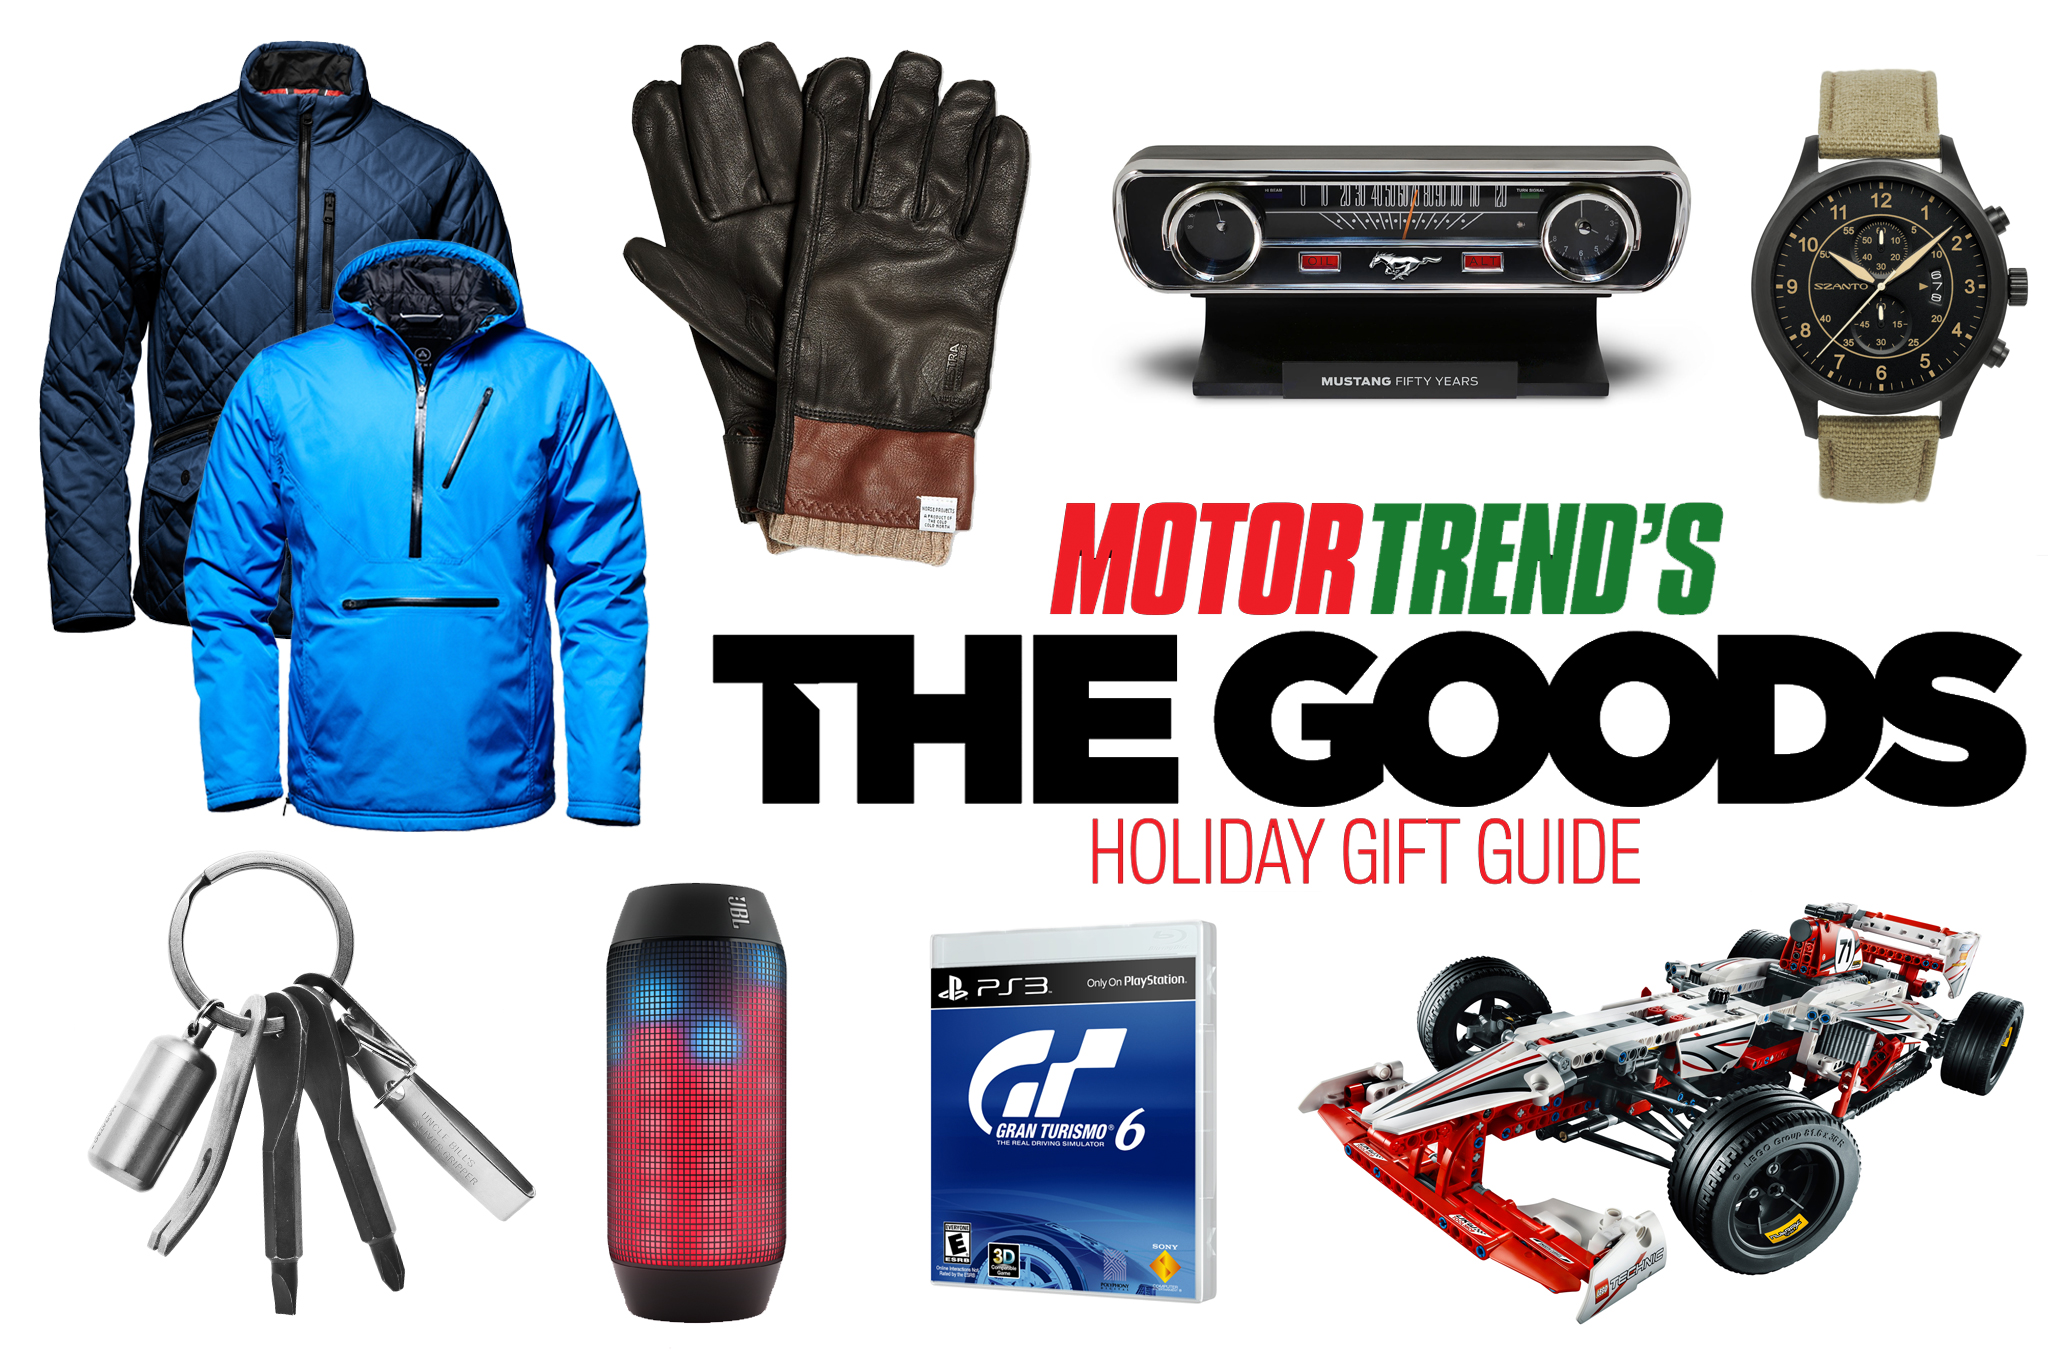 d95f68560b6 The Goods - Holiday Gift Guide 2013 - MotorTrend